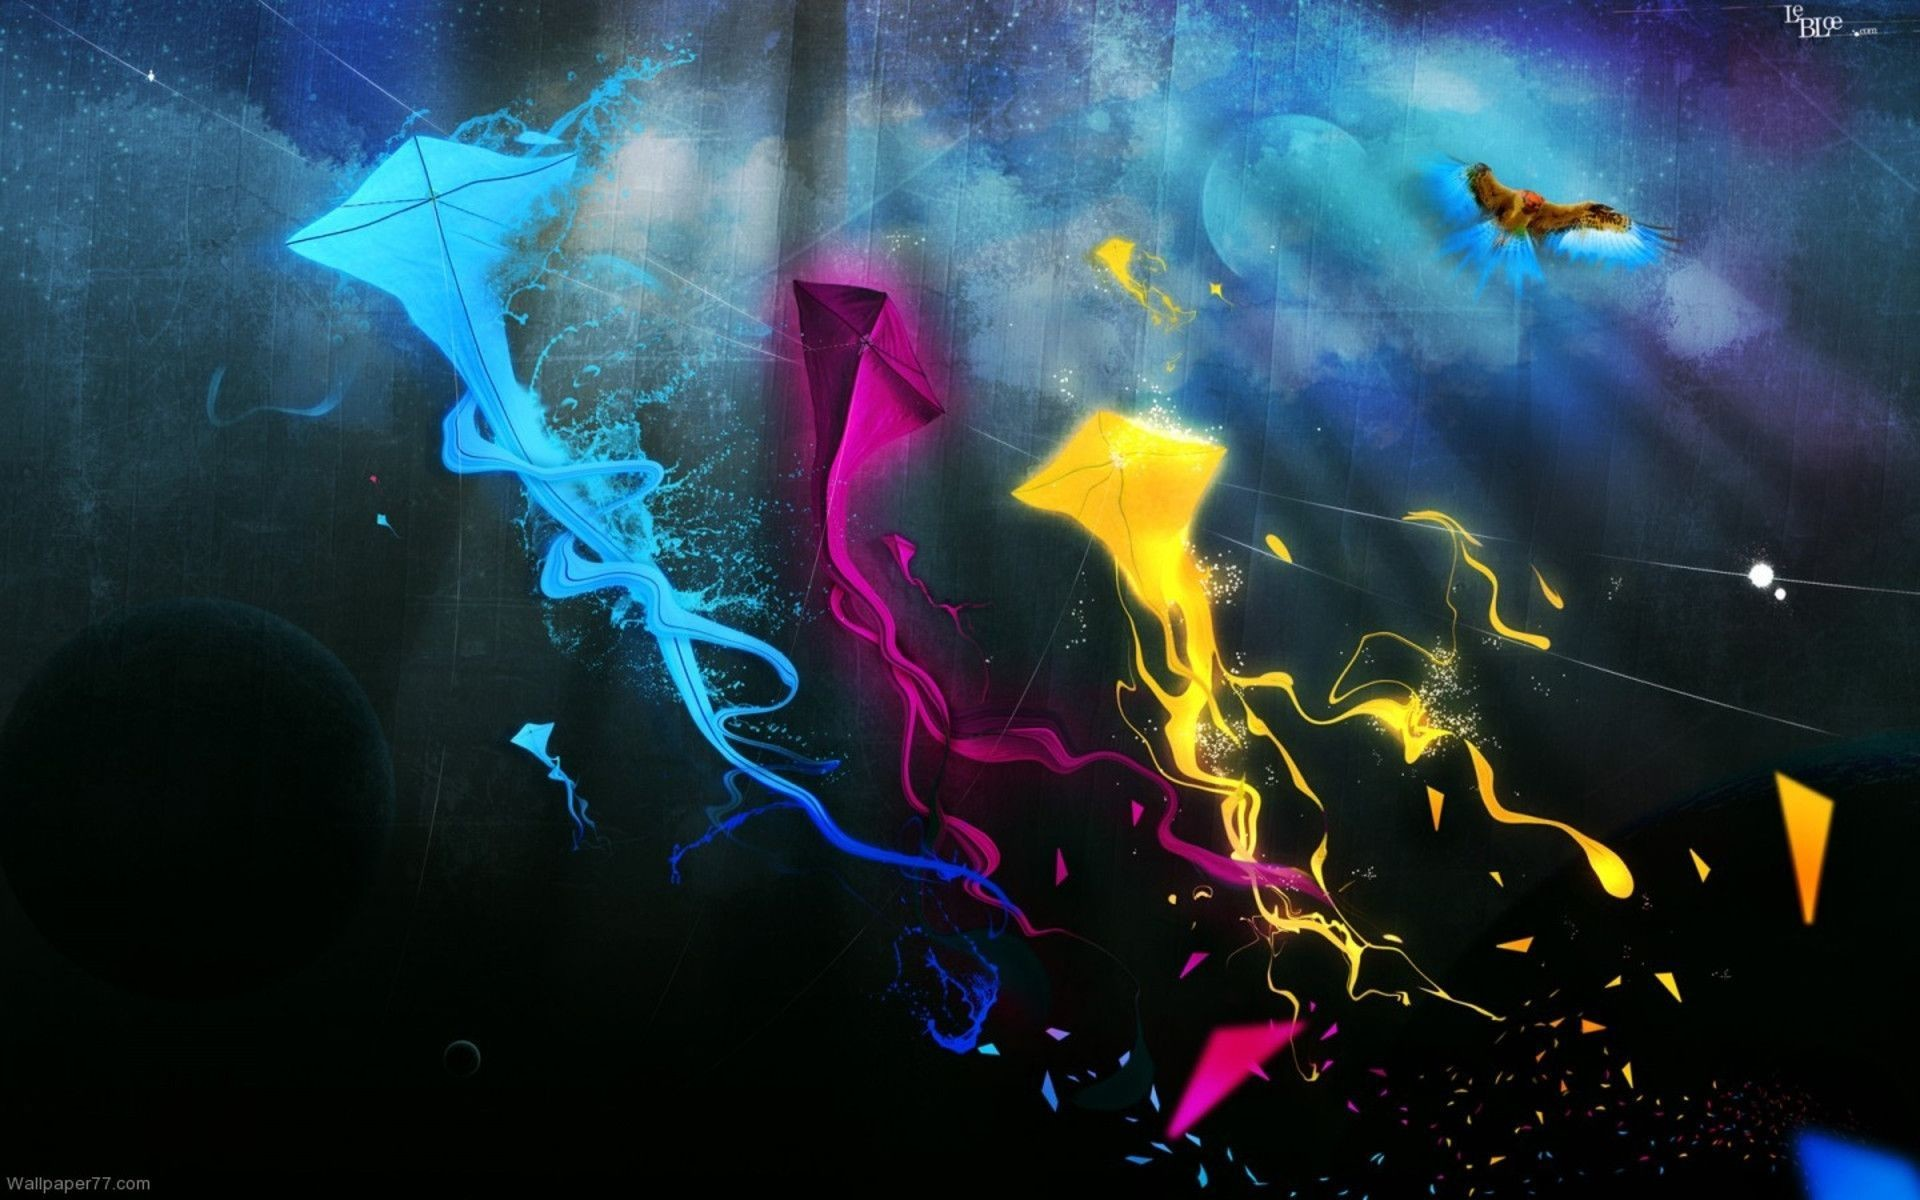 1920x1200 numSxTX-trippy-hd-wallpaper-by-annaanna42